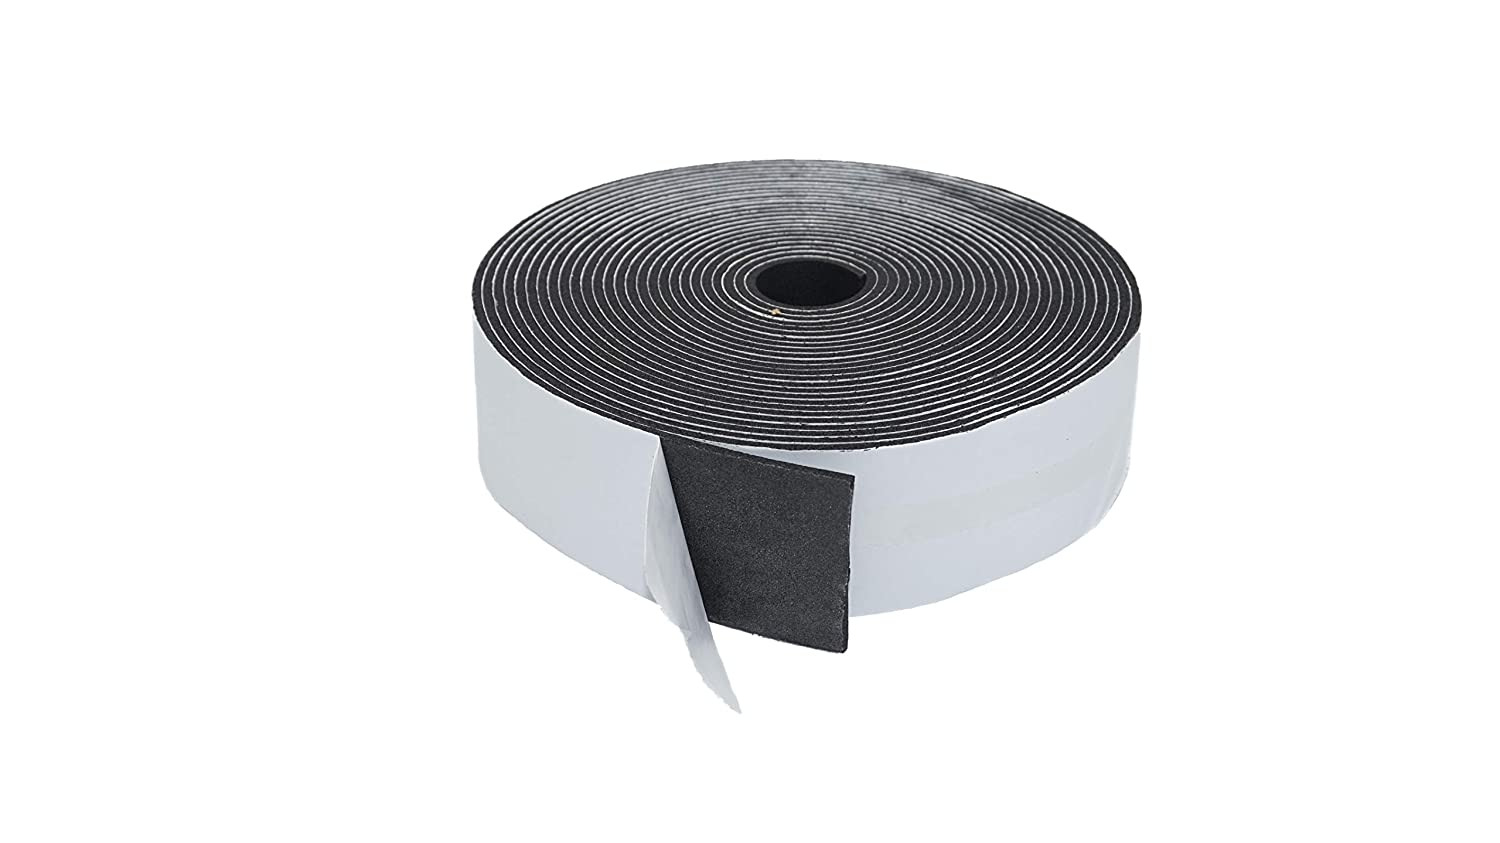 """FROZTECH 1/8 in 2 Inches Foam Tape for Pipe Insulation, Stripping Window and Door. Tape Adhesive Freezer Seal Collection. High-Density AC Insulation Black Closed Cell HVAC Automotive (1/8"""" X 2"""" X 30')"""